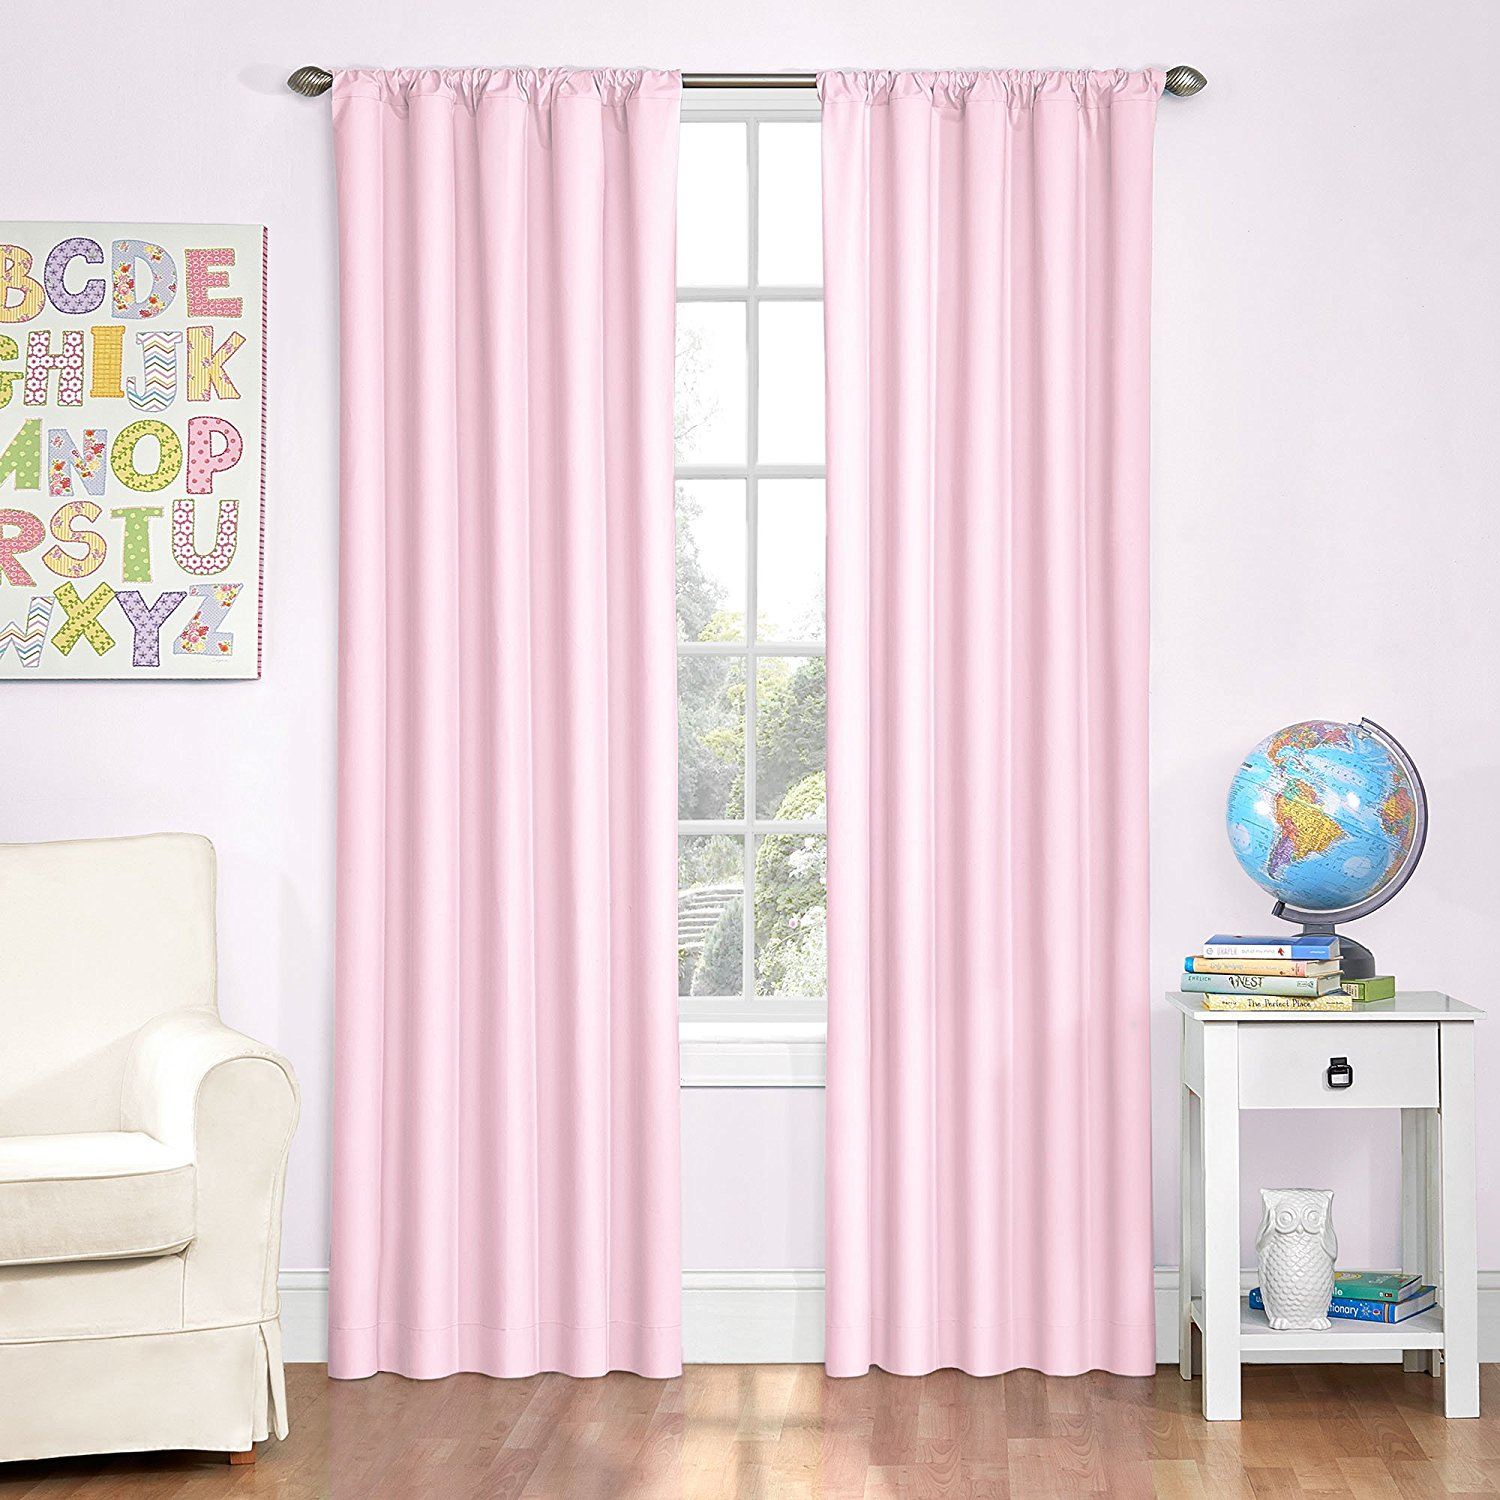 pink curtains amazon.com: eclipse kids microfiber room darkening window curtain panel, 42  by 84-inch, YTJMXZR